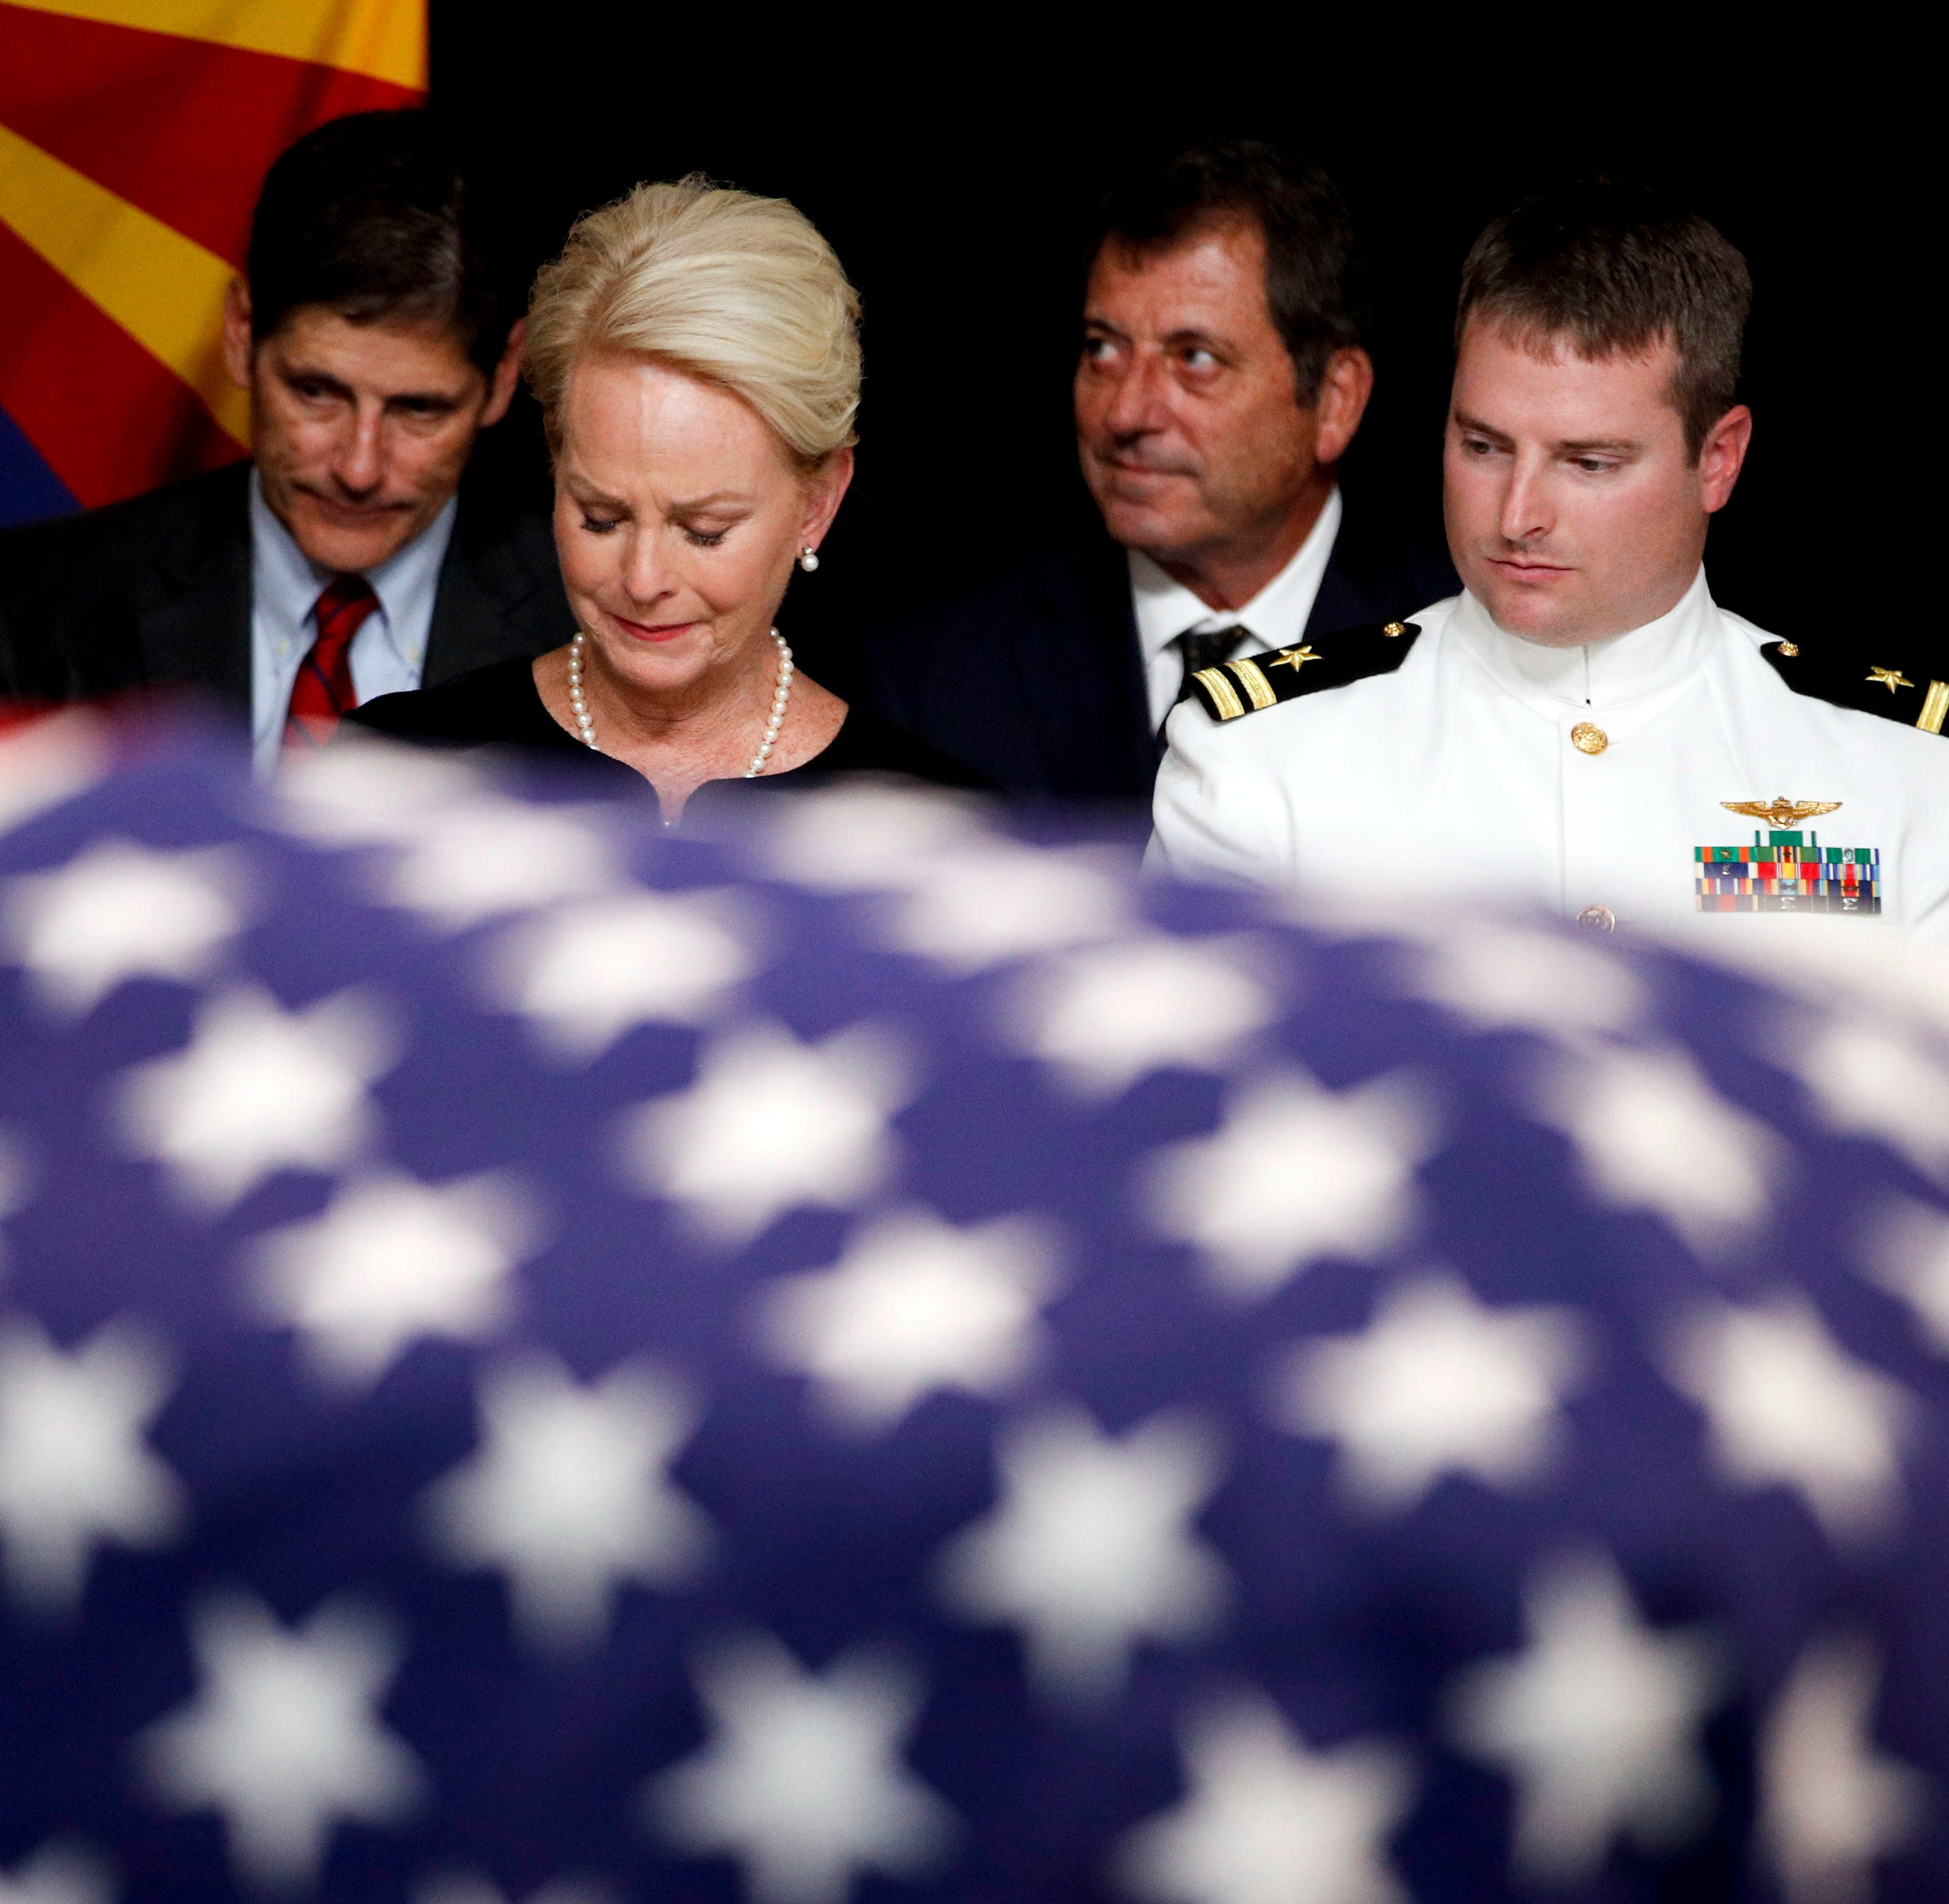 Sen. John McCain: What to know about Washington tributes on Friday and Saturday